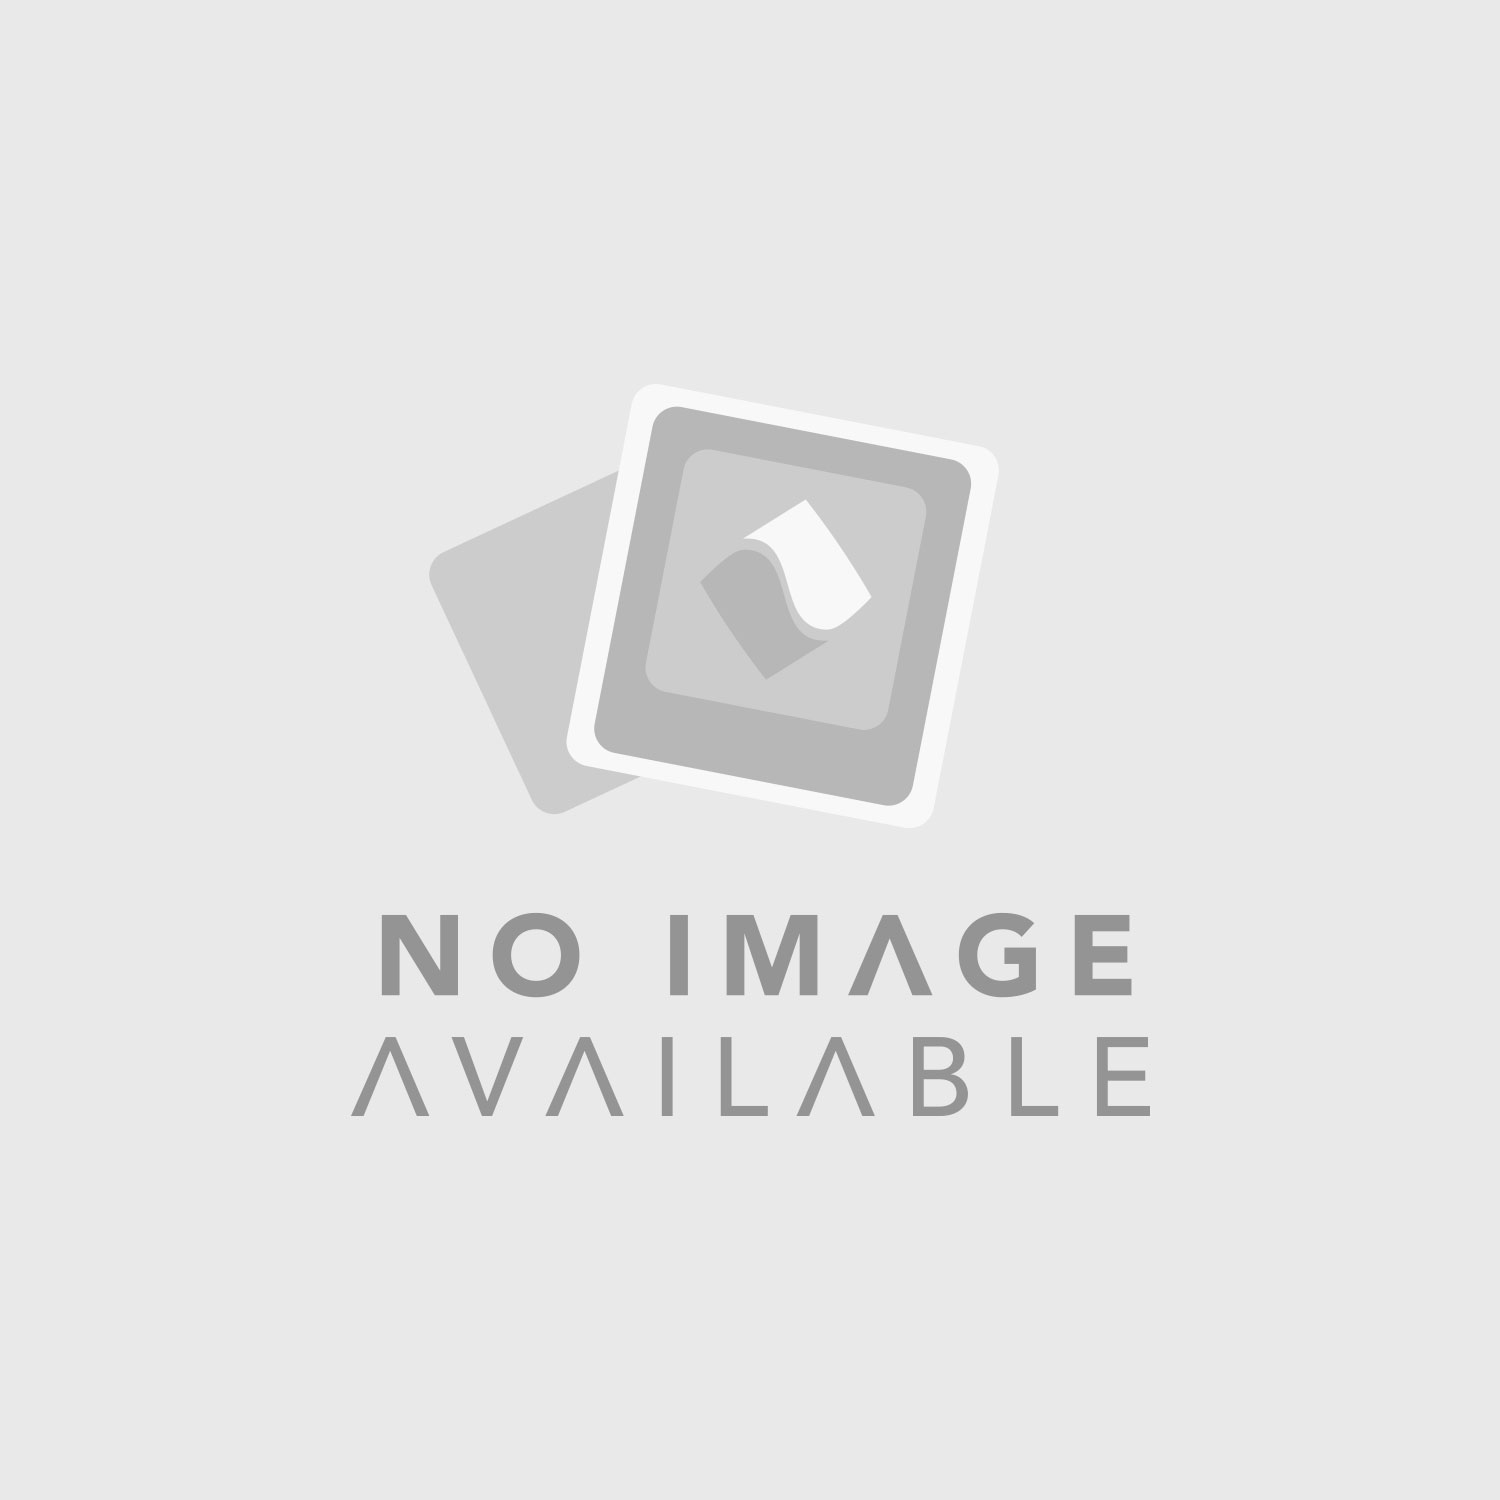 CAD Astatic 40-347 Single 3-Pin XLR Female Wall Plate